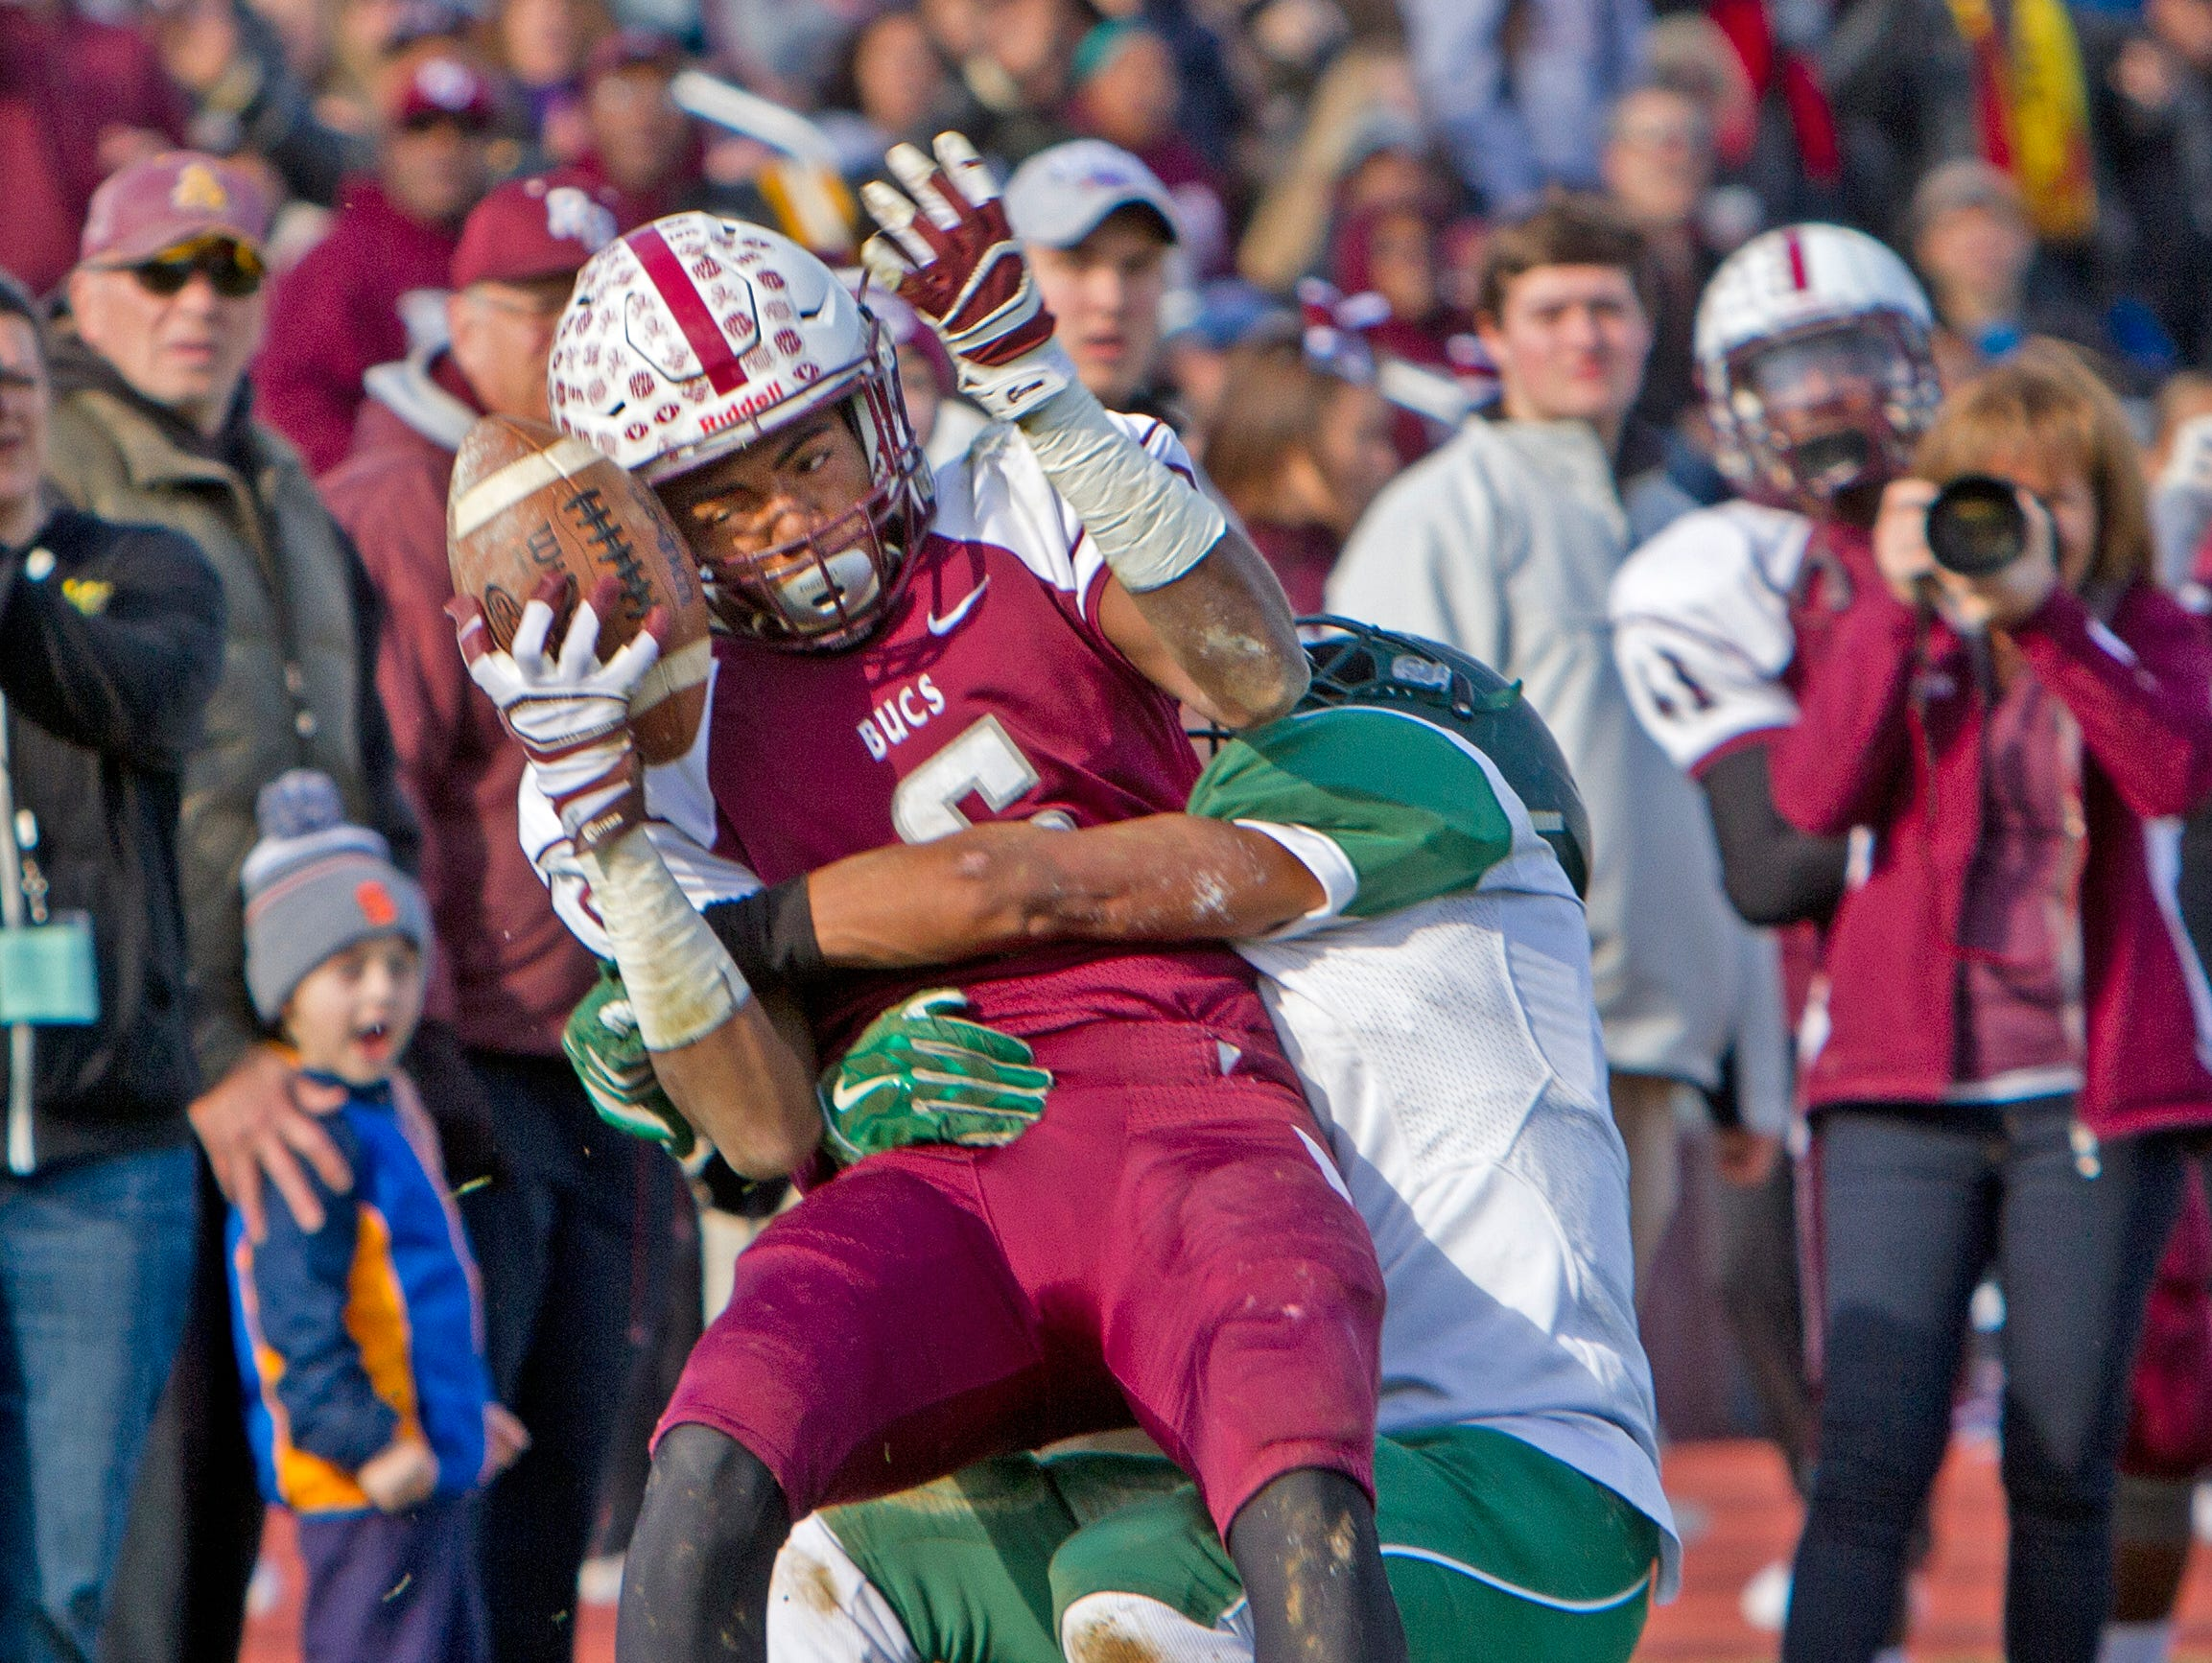 Red Bank Regional's Sadiq Palmer pushes the ball against his helmut after catching it to secure a pass that set up his team's first touchdown. Long Branch vs Red Bank Regional Thanksgiving Day Football game in Red Bank NJ on November 26, 2015.